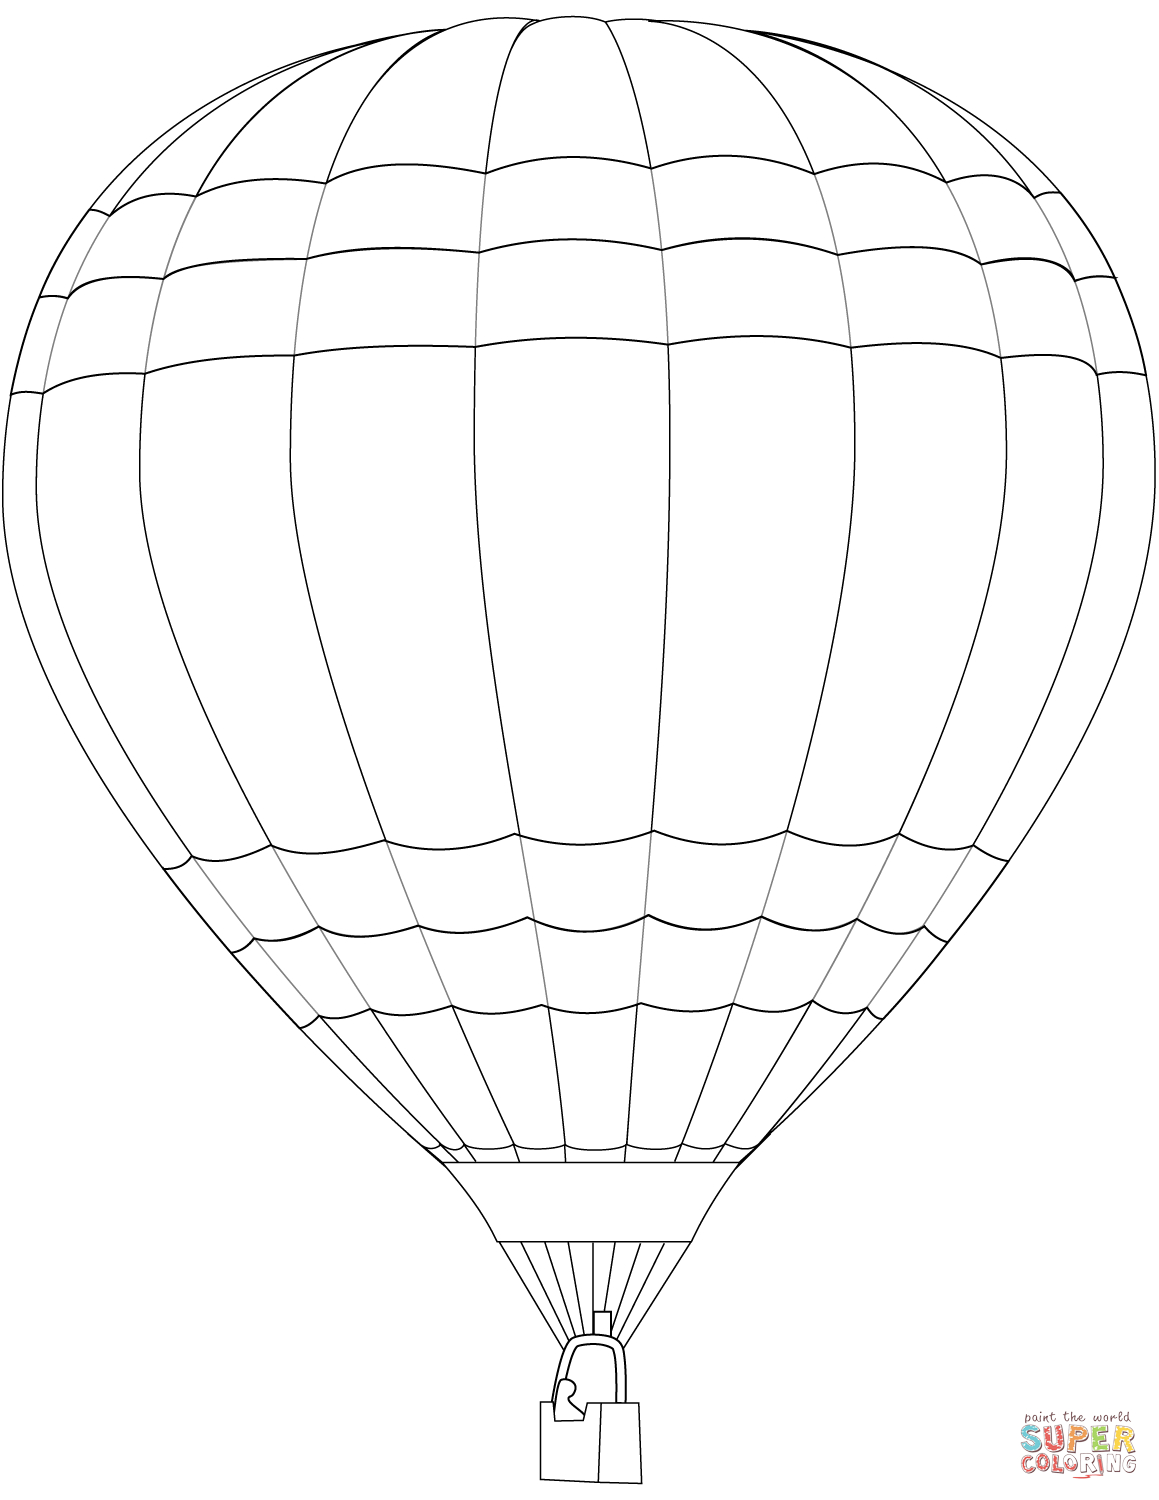 Hot Air Balloon Coloring Page To Print Of Weird Hot Air Balloon Colouring  Page Unique Coloring